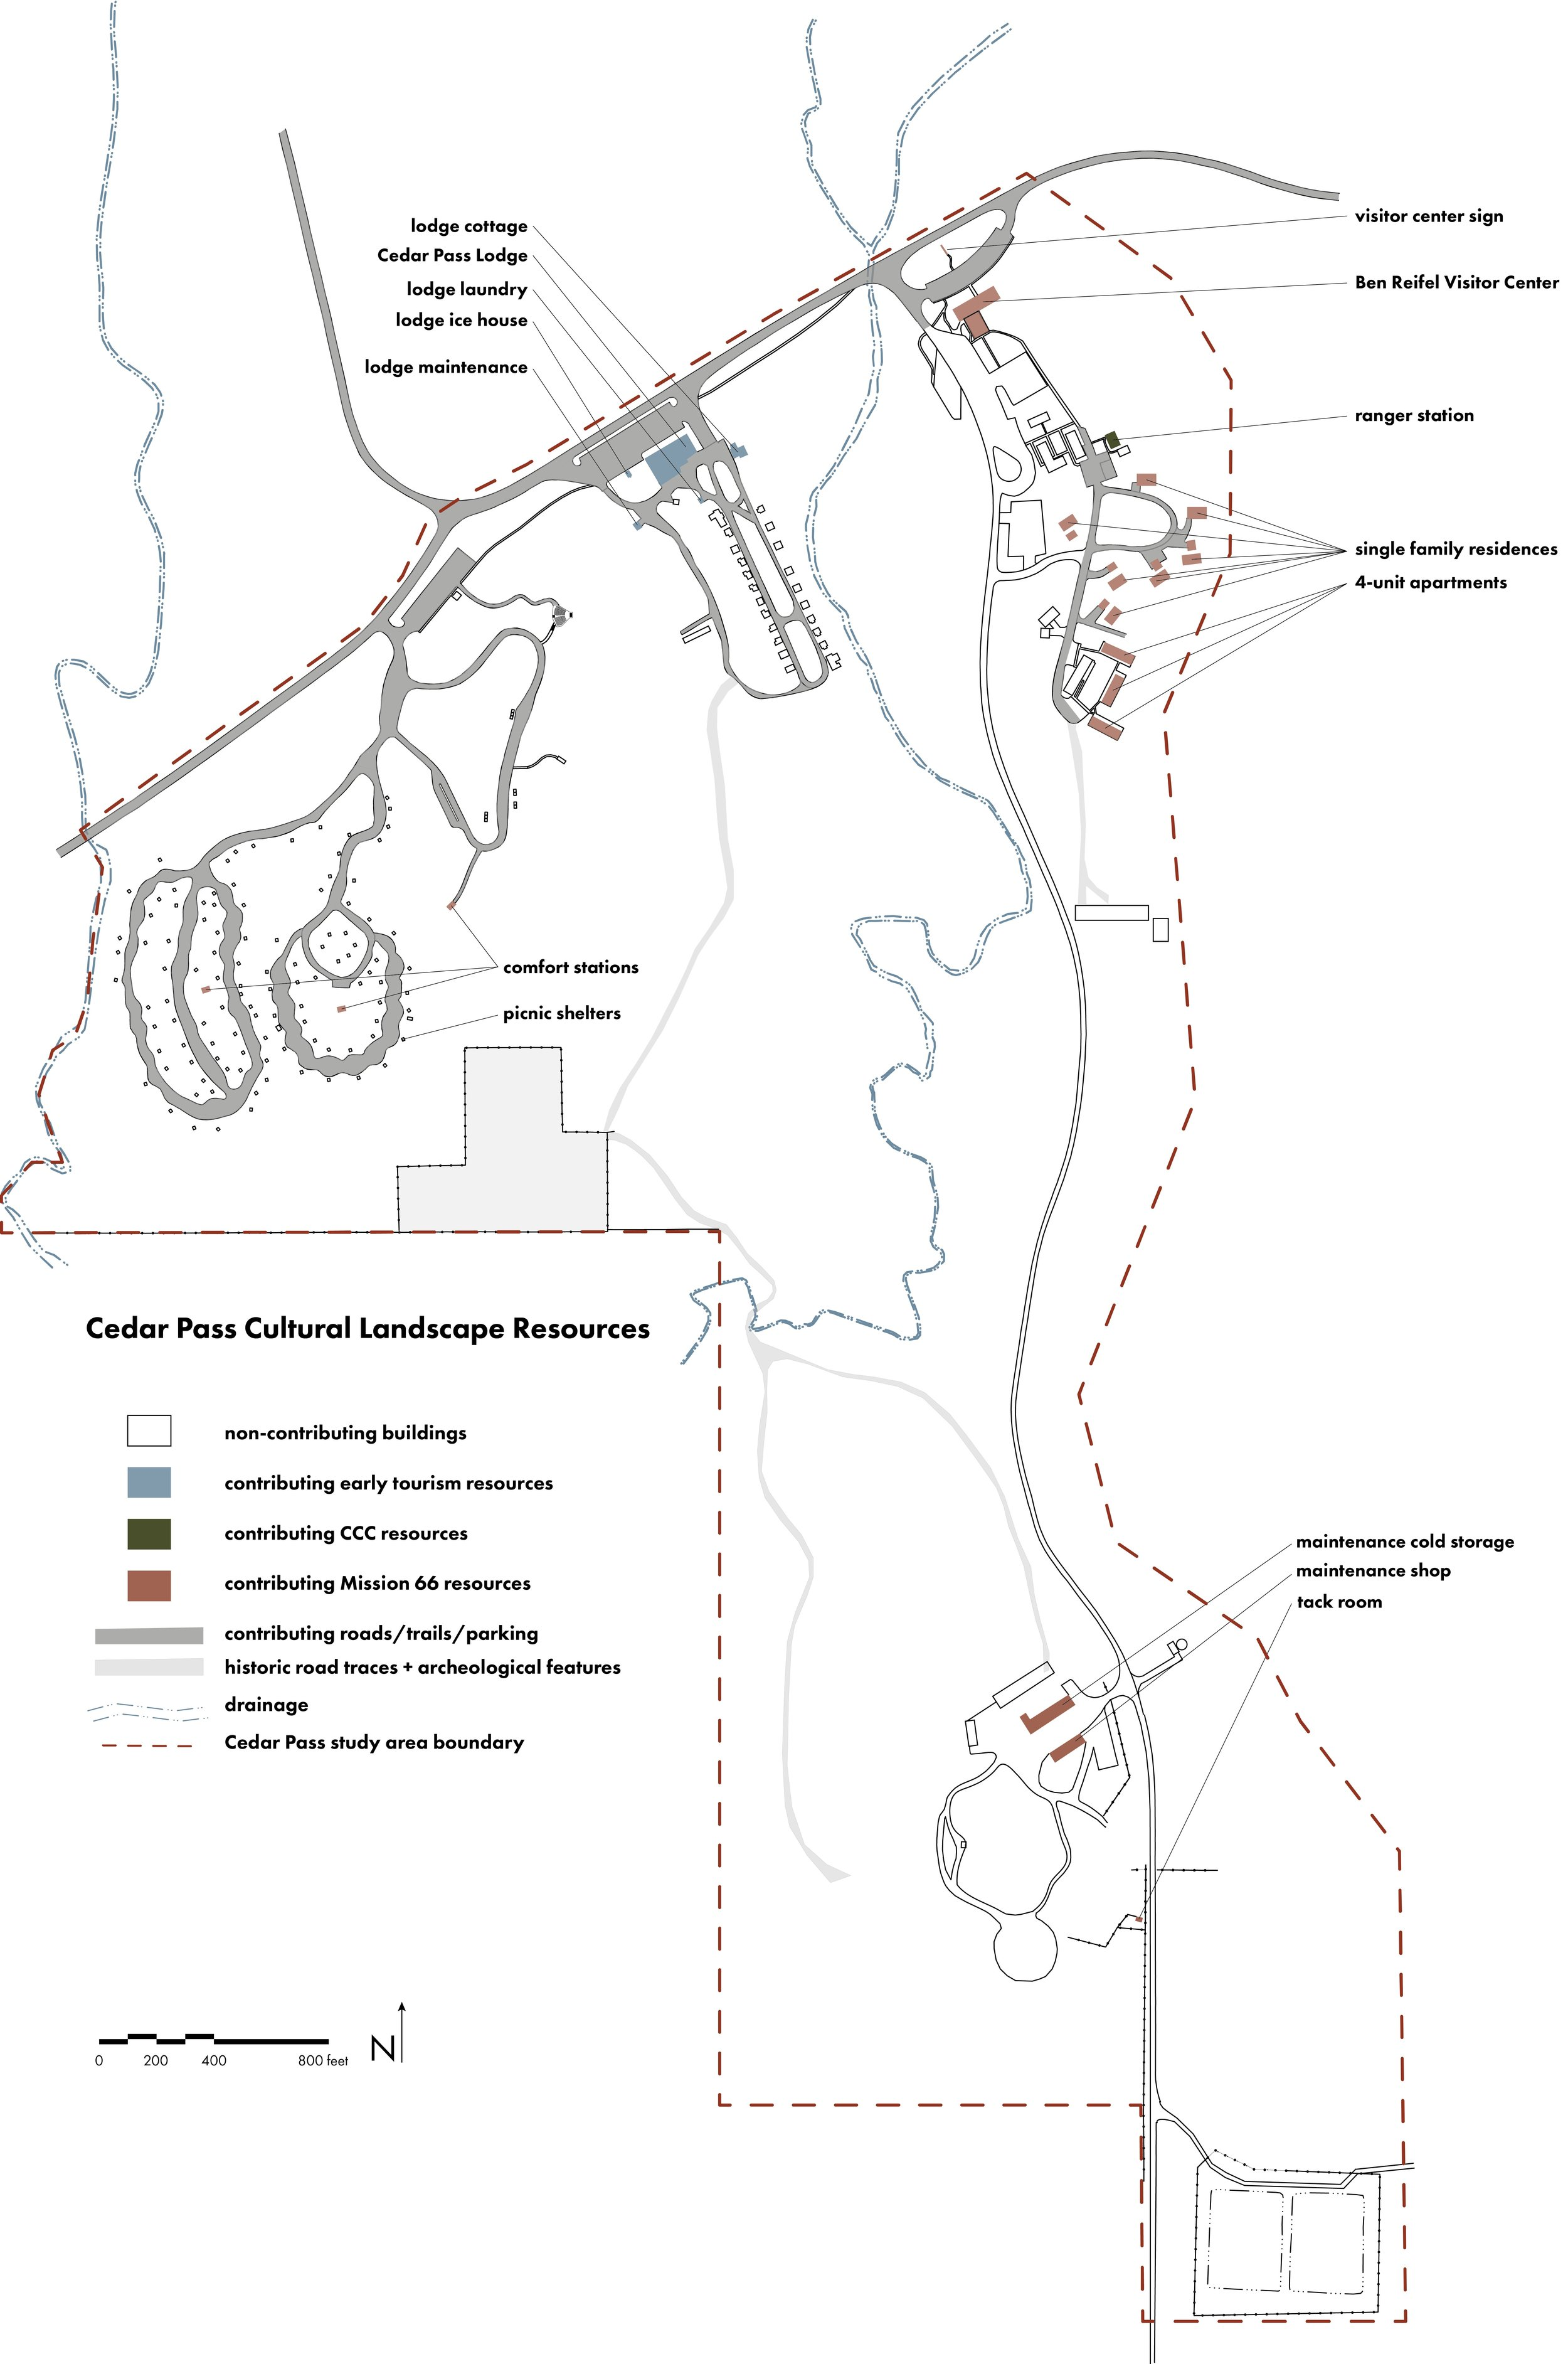 Map of cultural landscape resources in Cedar Pass by development phase: Early Tourism (1909-1938), CCC-era (1938-1942), and Mission 66 (1956-1966).